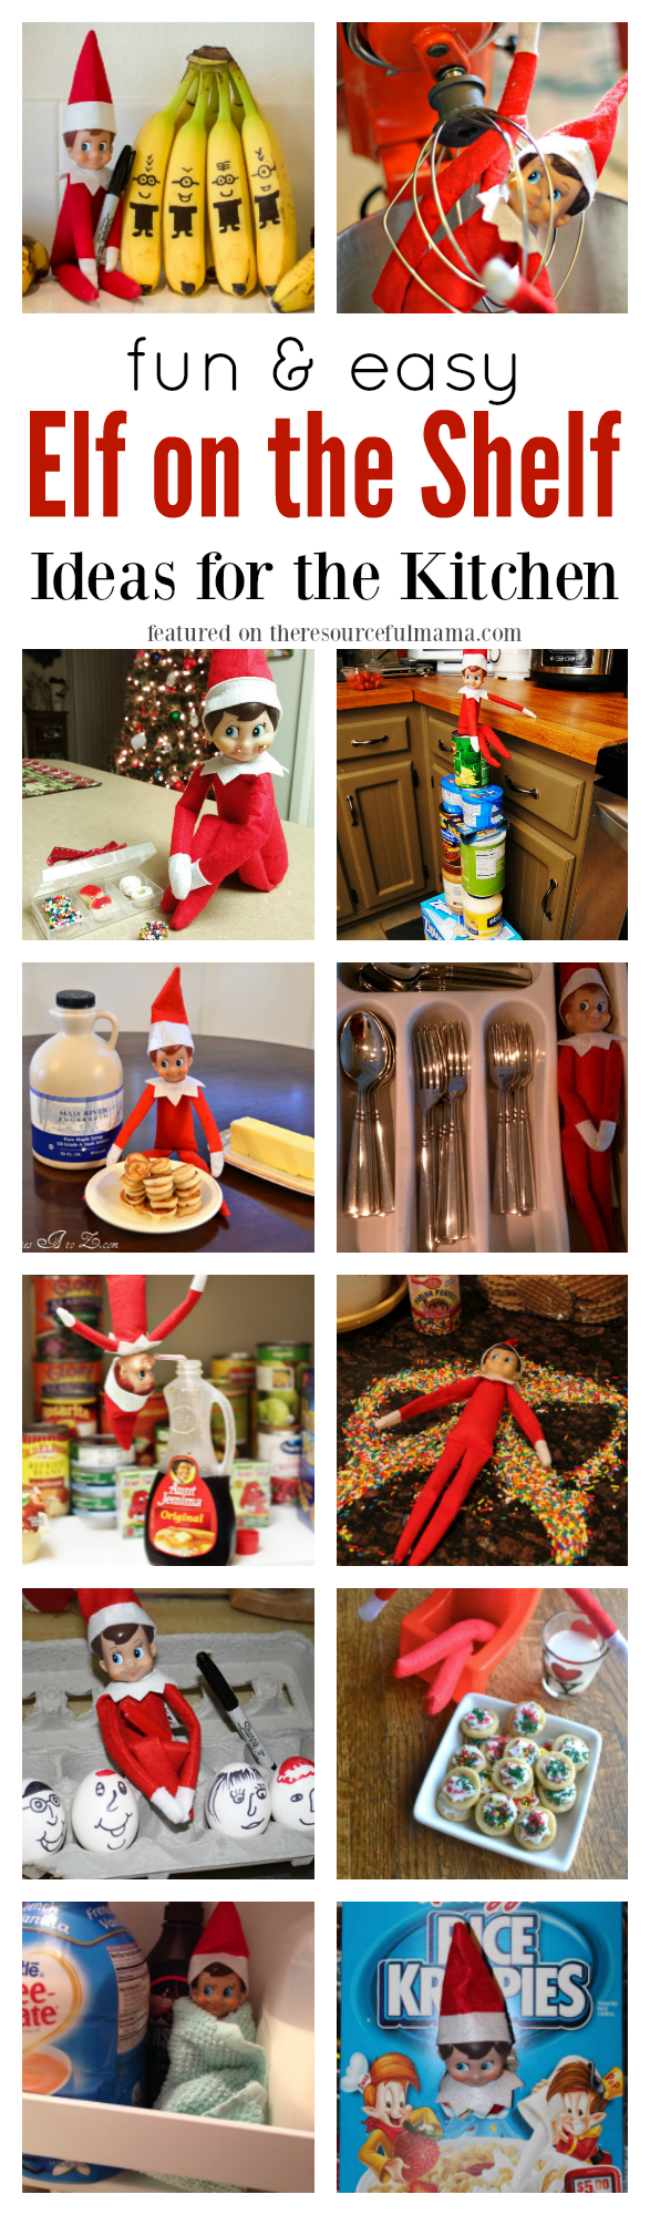 Fun Amp Easy Elf On The Shelf Ideas For The Kitchen The